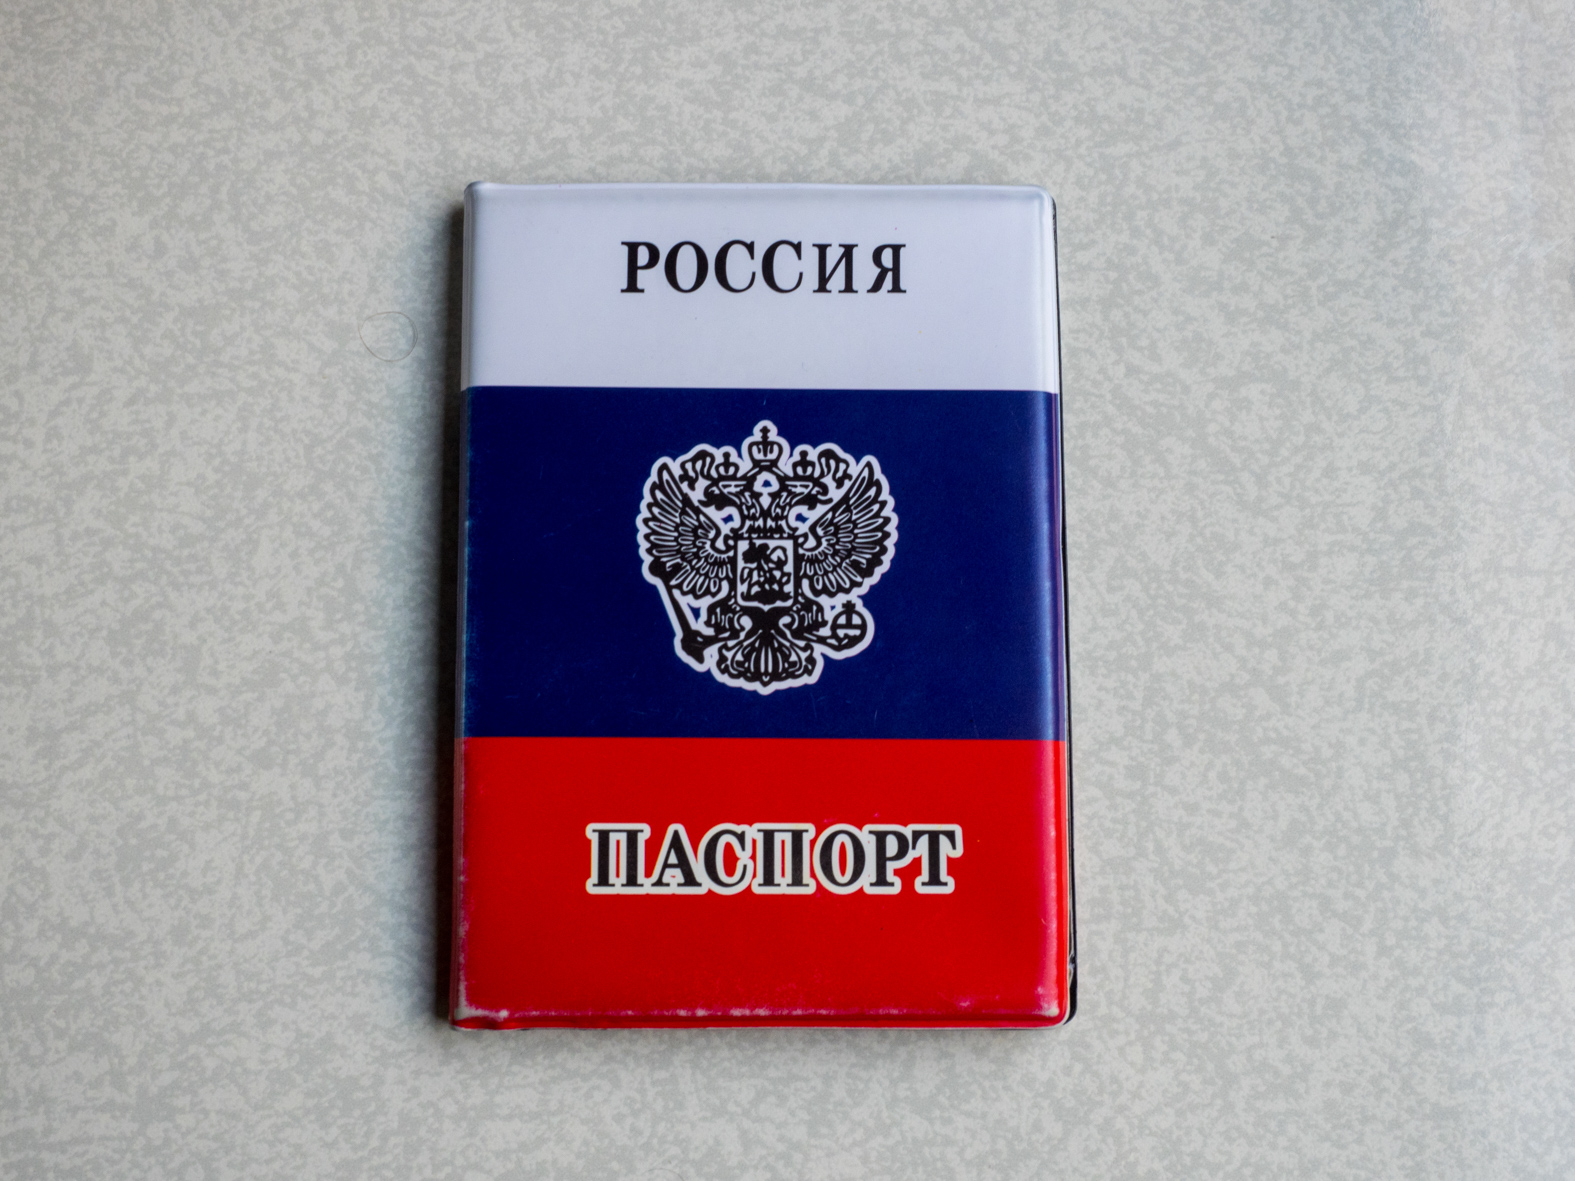 A Russian passport cover of a passenger on the Trans-Siberian Railway from Moscow-Vladivostok. Spanning a length of 9,289km, it's the longest uninterrupted single country train journey in the world. It has connected Moscow with Vladivostok since 1916, and is still being expanded. It was built between 1891 and 1916 under the supervision of Russian government ministers personally appointed by Tsar Alexander III and his son, the Tsarevich Nicholas (later Tsar Nicholas II).